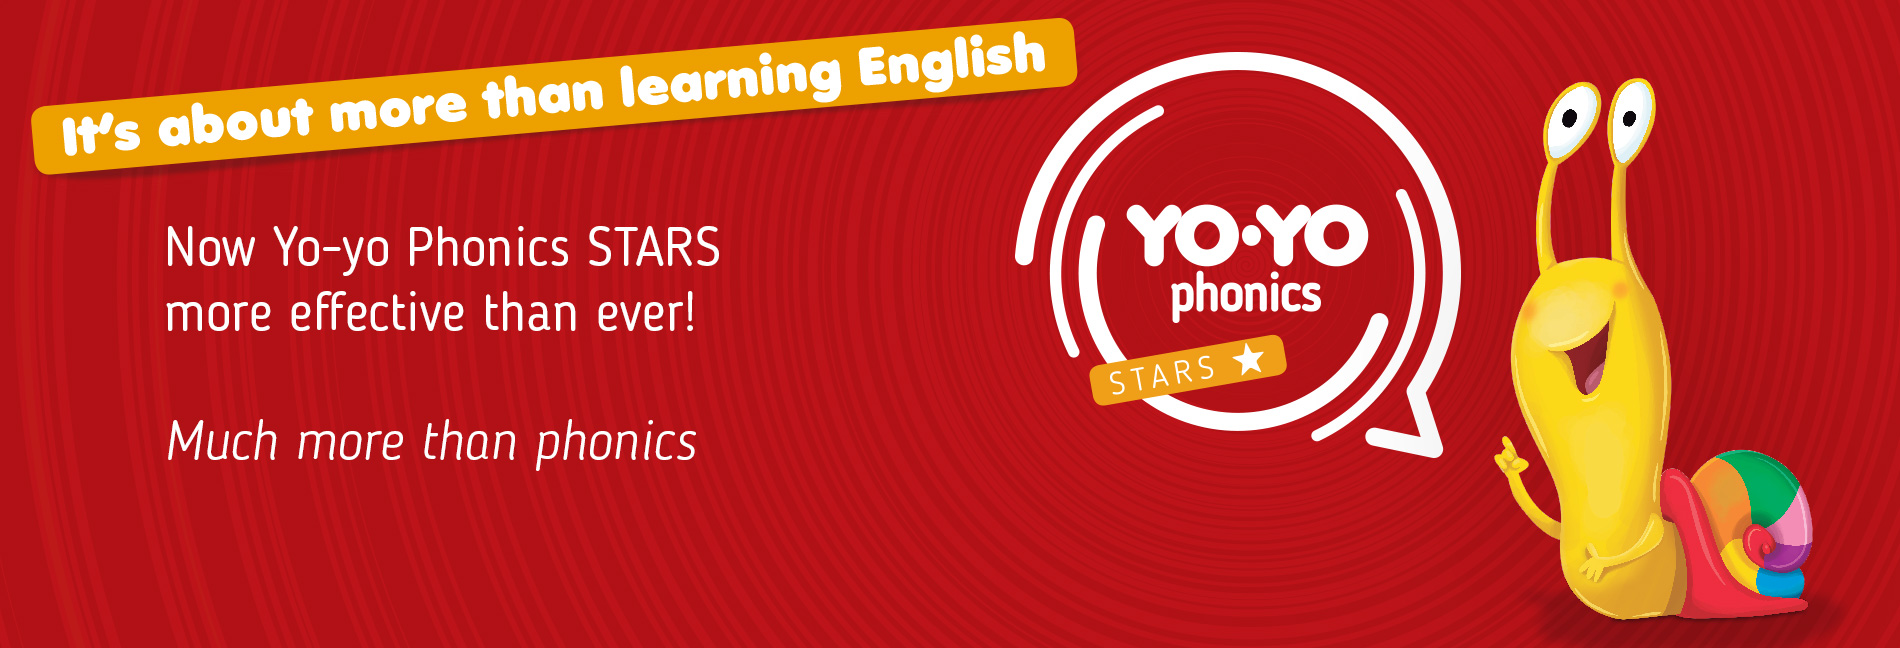 Proyecto YoYo Phonics bilingual learning